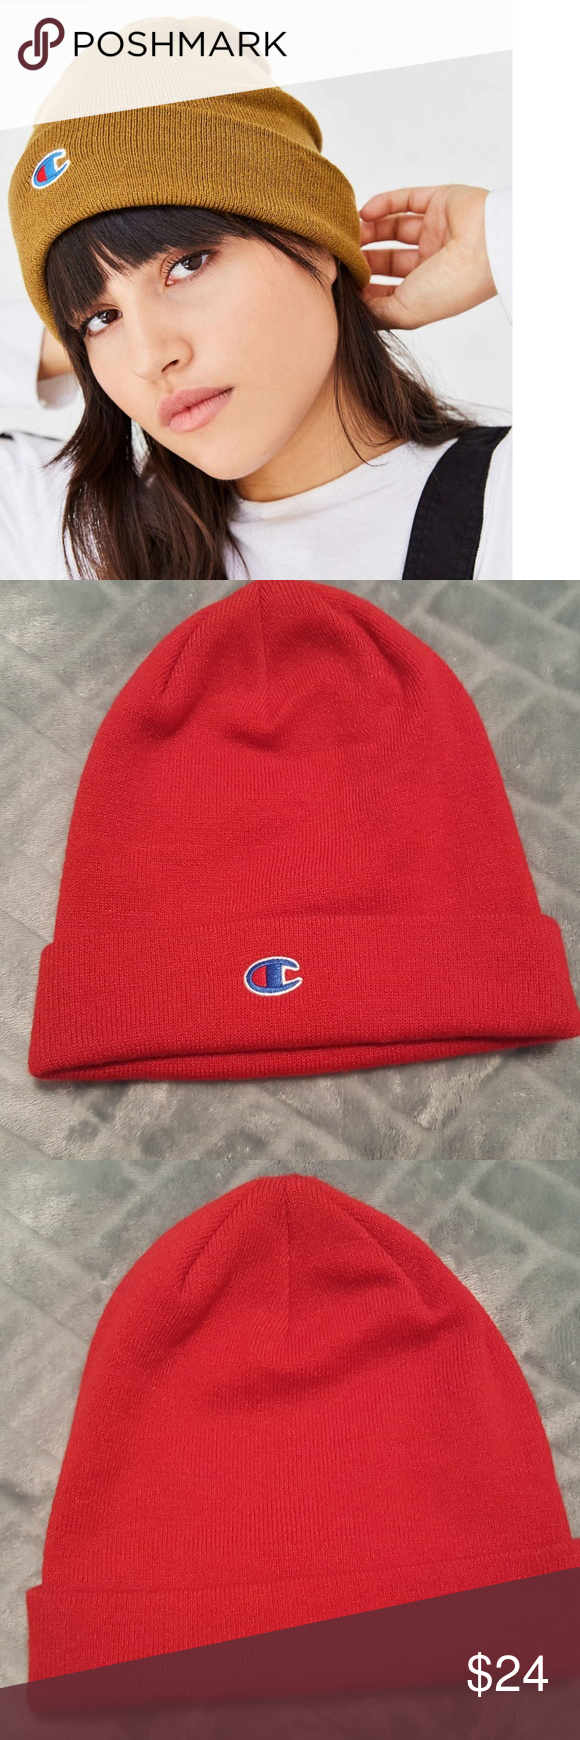 e0bfd3abace3f URBAN OUTFITTERS CHAMPION BEANIE HAT OSFM NEW!!! Unisex hat. Red champion  beanie from UO. Champion Accessories Hats